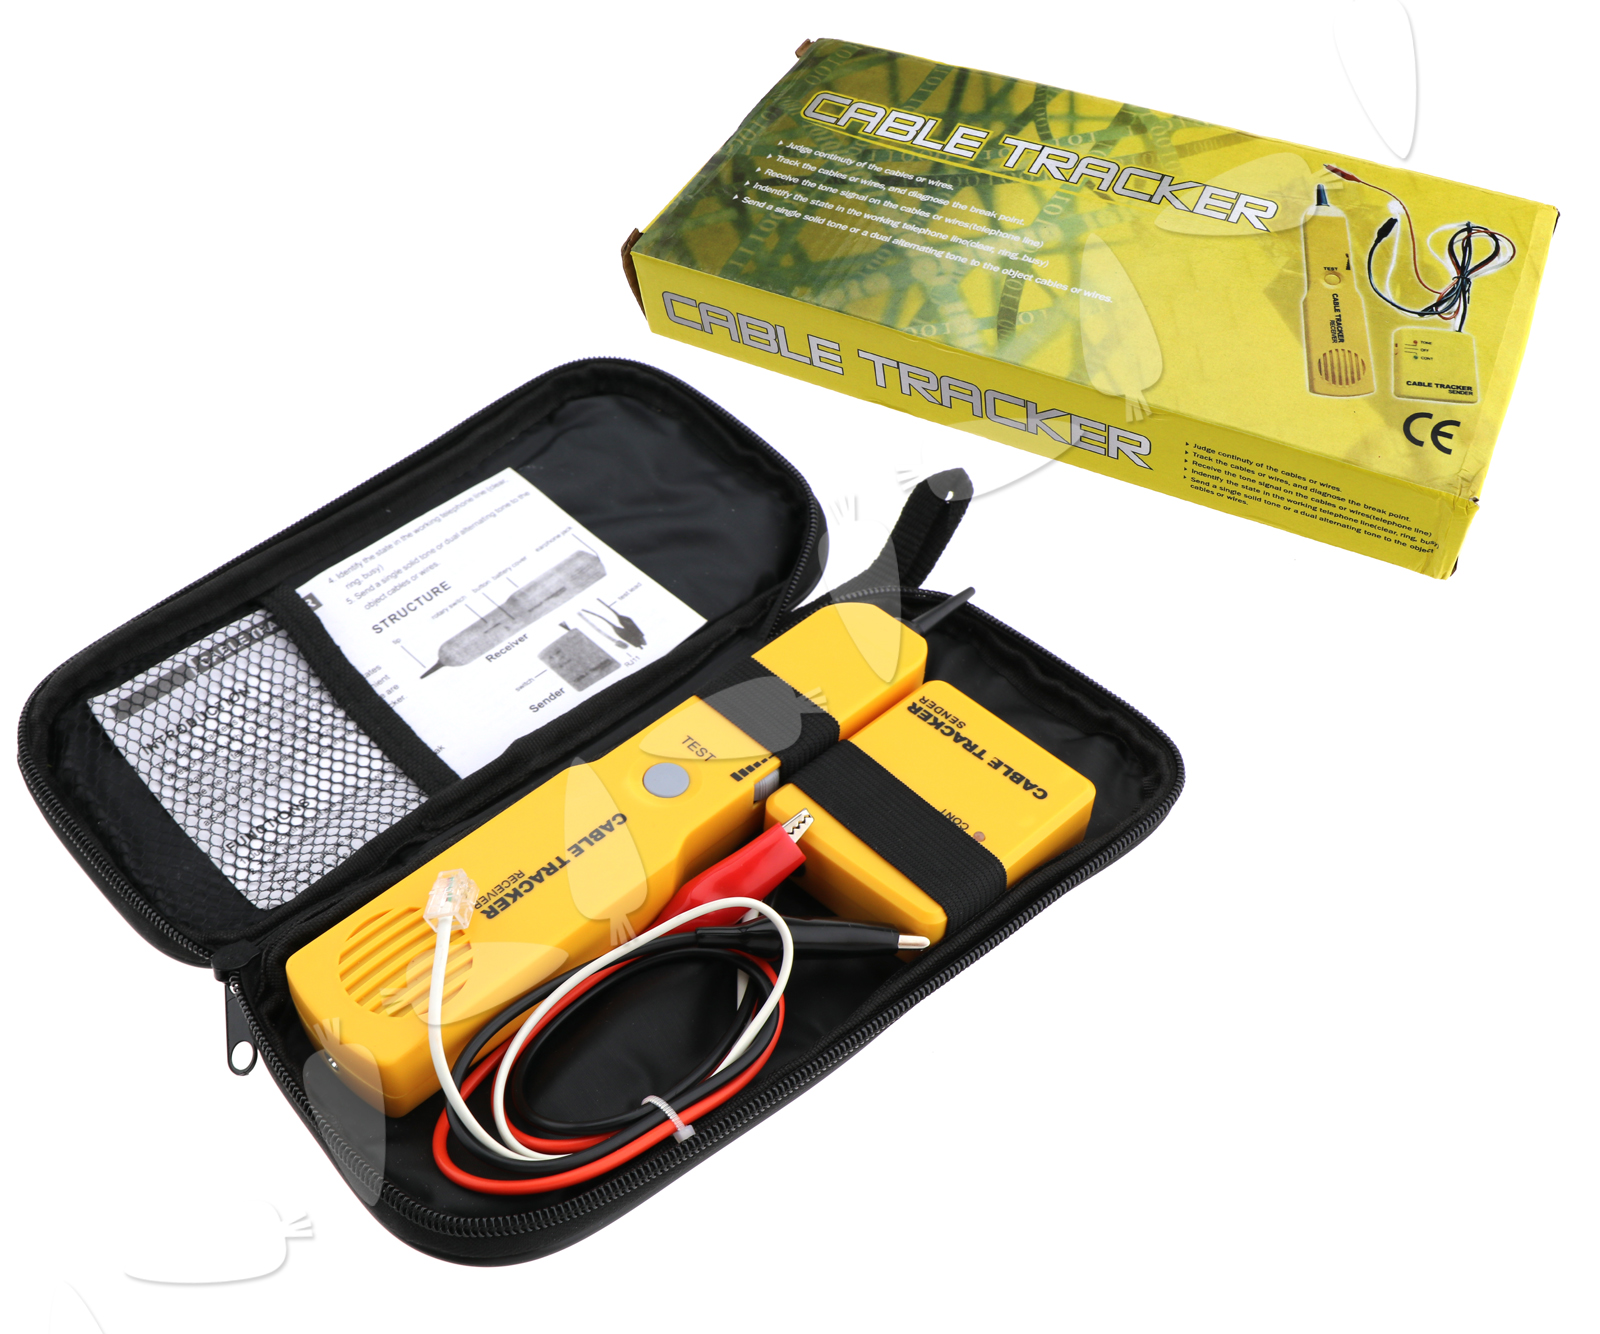 Lowes Tone Generator Electrical Wire Tracer Electrical: Network RJ11 Line Finder Cable Tracker Tester Toner